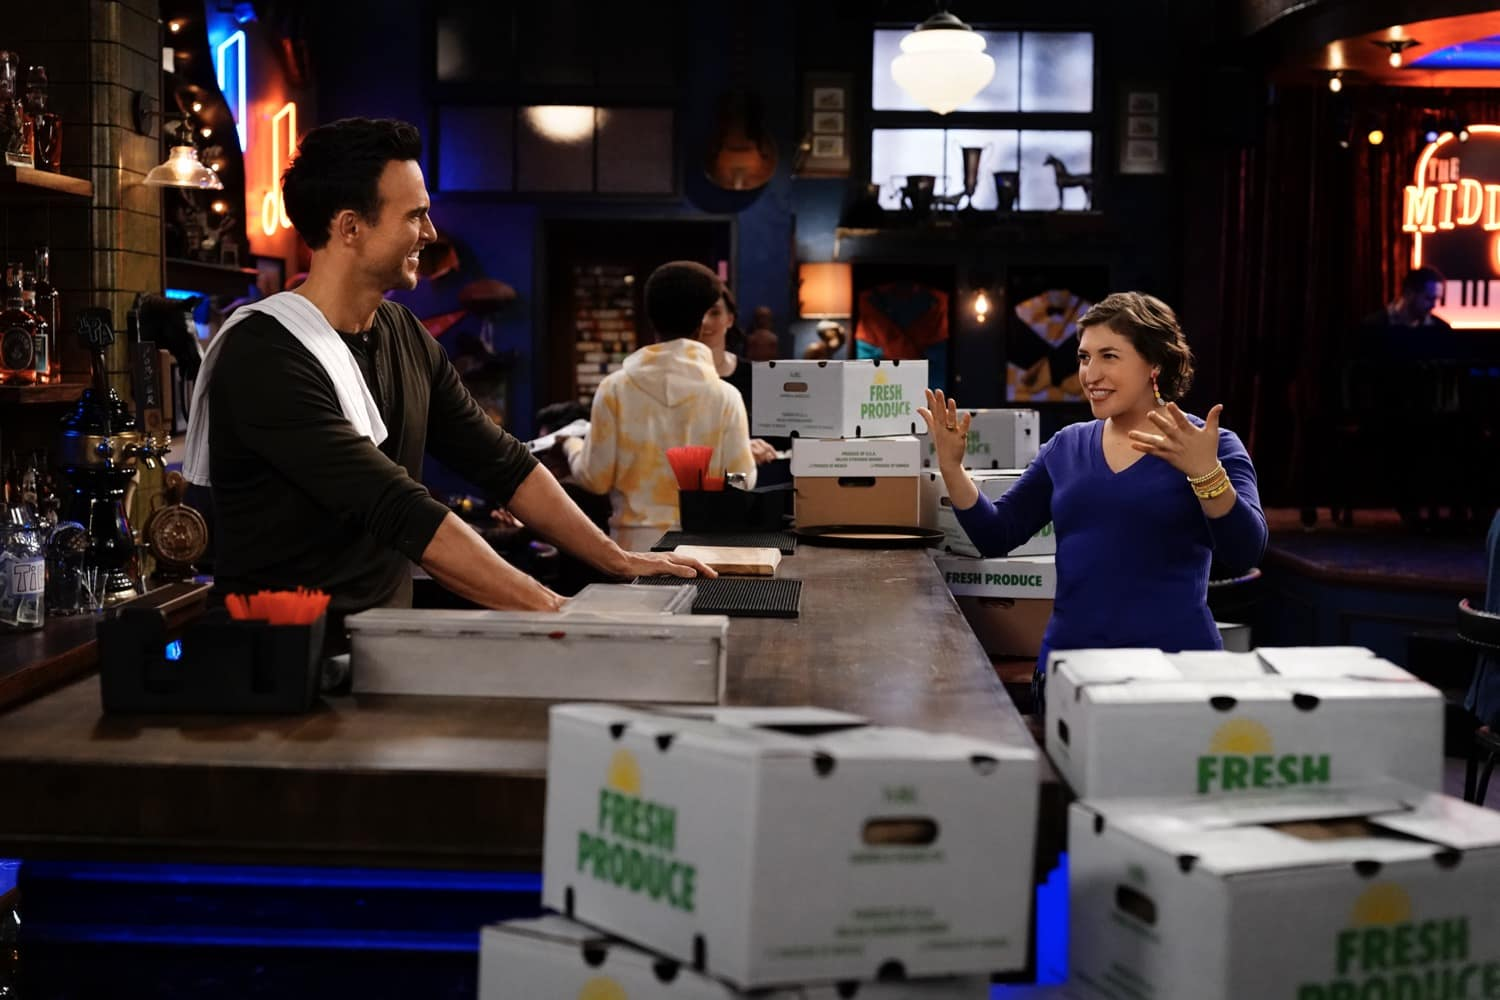 """CALL ME KAT Season 1 Episode 9 : L-R: Cheyenne Jackson and Mayim Bialik in the """"First Date"""" episode of CALL ME KAT airing Thursday, Feb. 25 (9:00-9:30 PM ET/PT) on FOX. ©2021 FOX MEDIA LLC. Cr. Cr: Lisa Rose/FOX."""